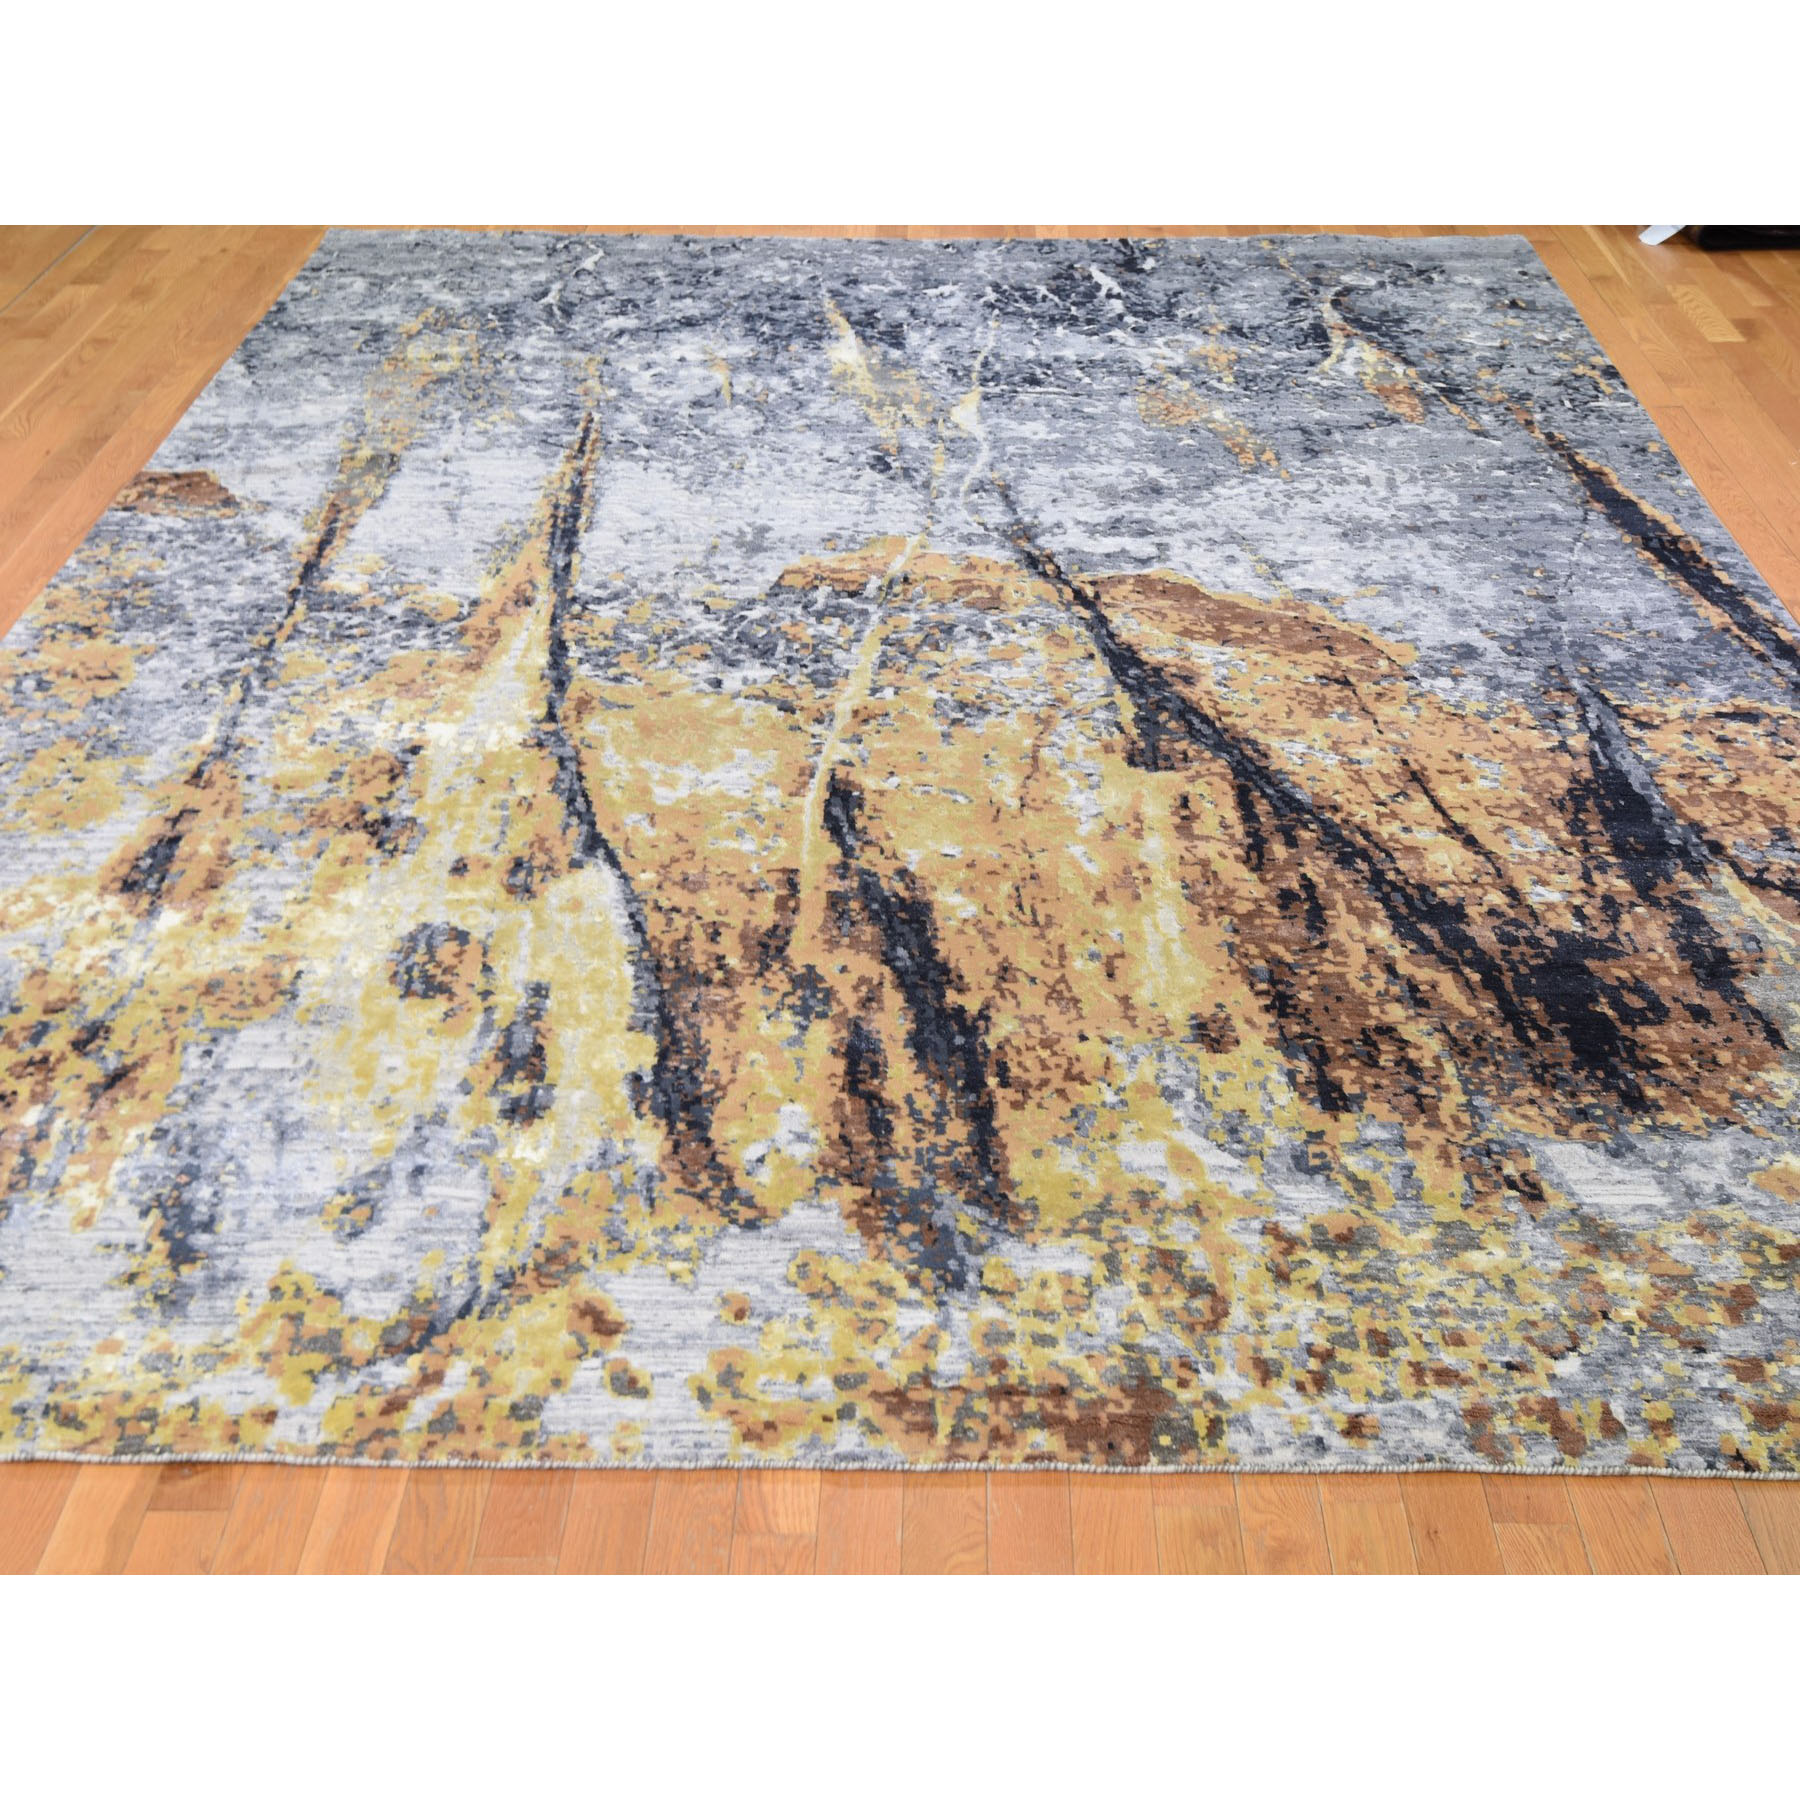 10'x14' Gold Abstract Design Wool And Silk hand Knotted Oriental Rug